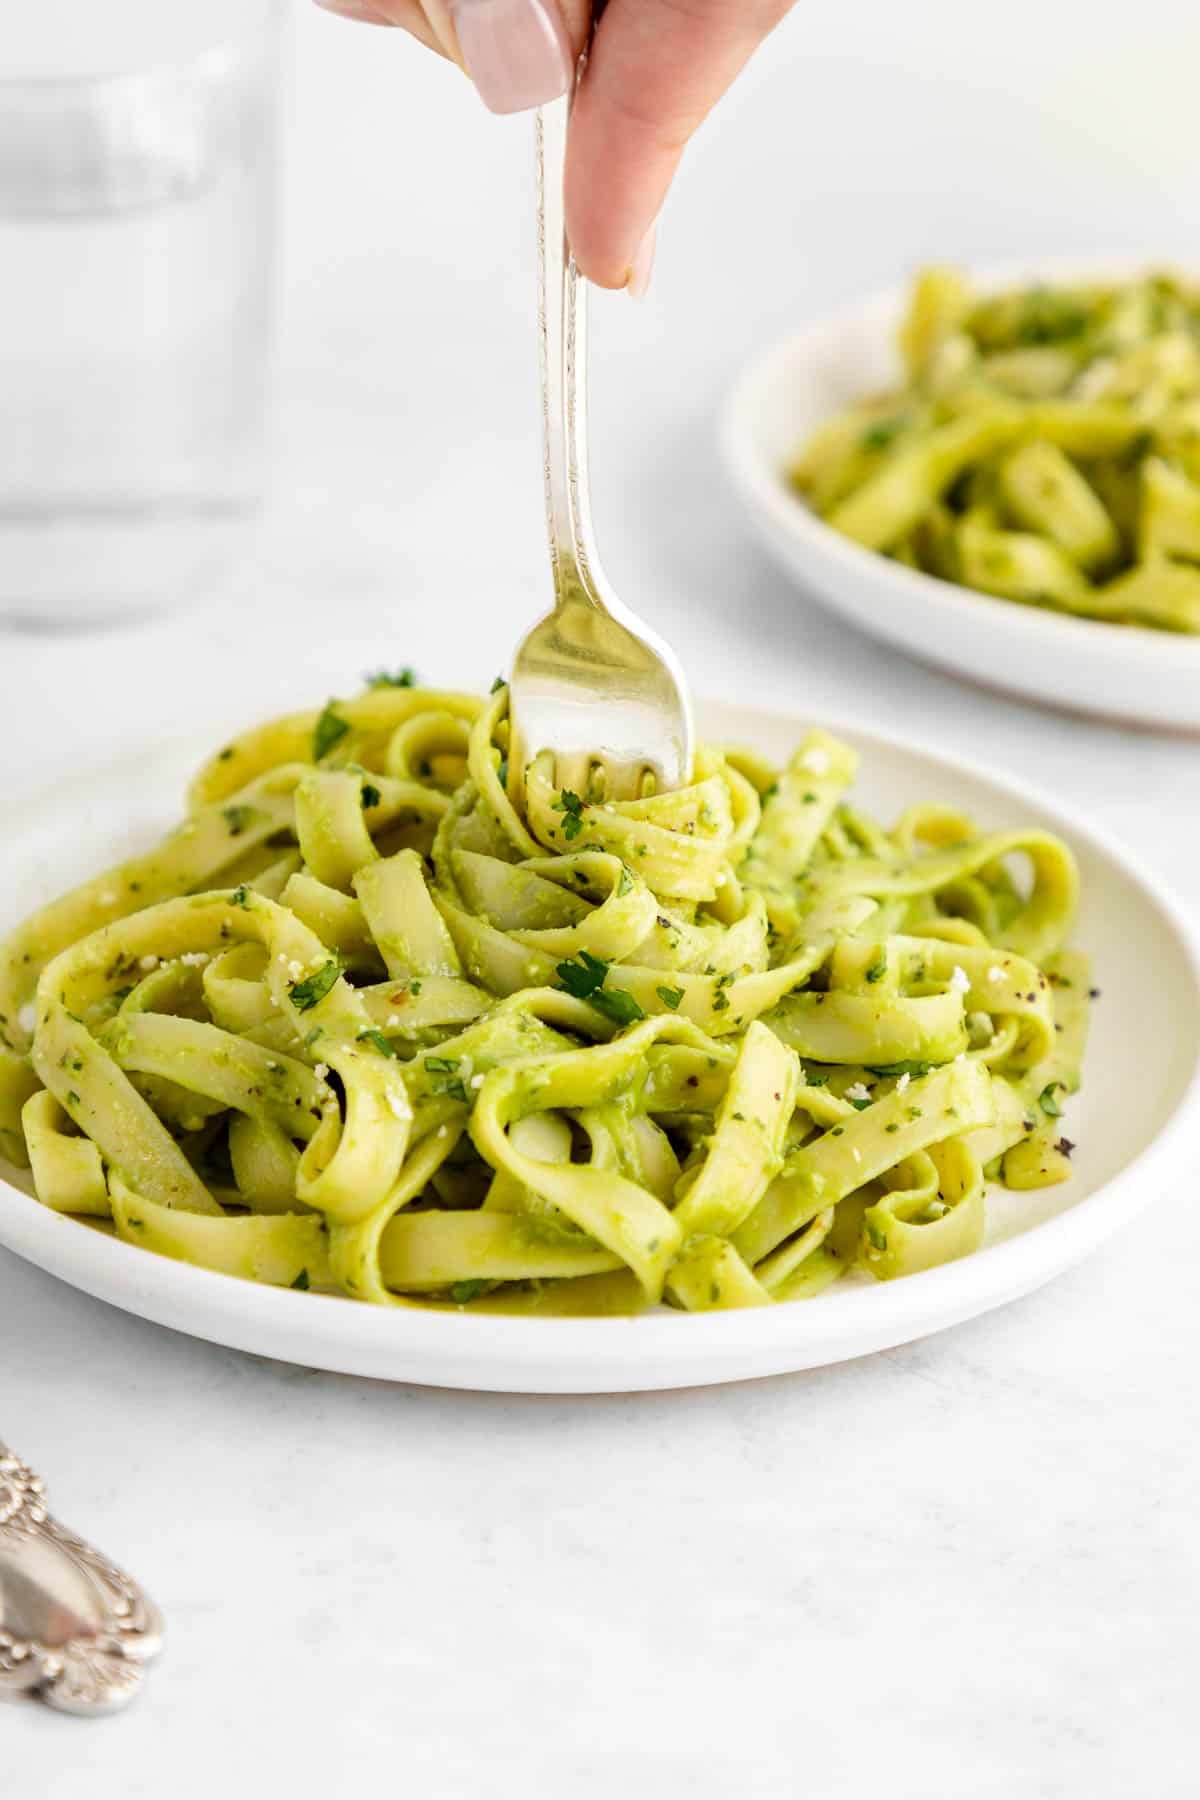 a fork twirling vegan avocado pasta on a white plate